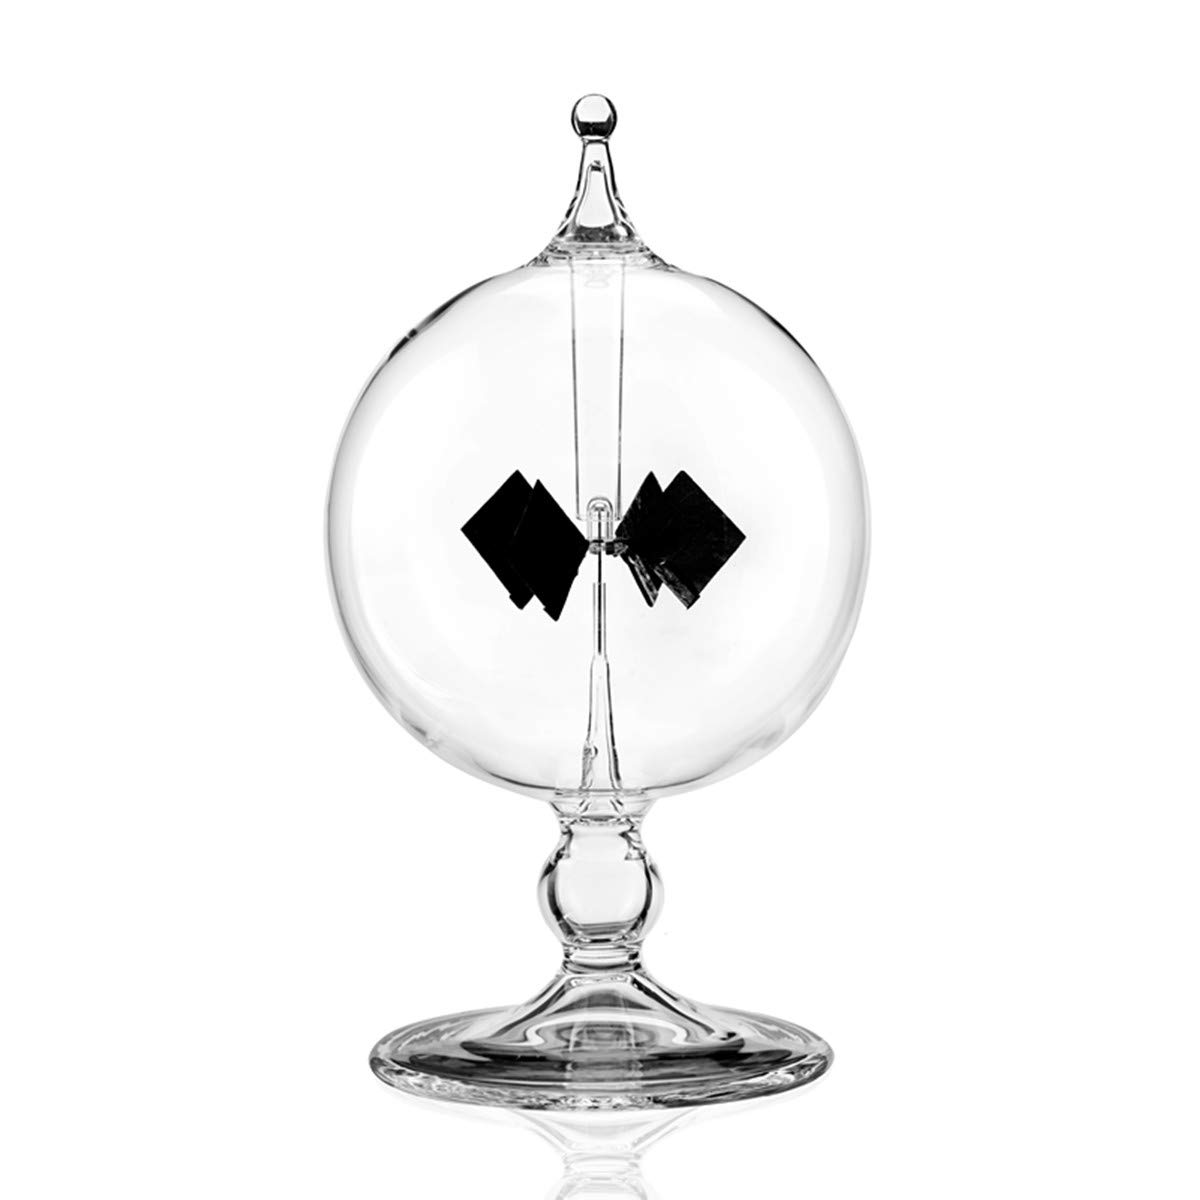 MarsGeek Glass Windmill Solar Powered Crookes Radiometer Light Mill for Detecting Sunlight and Electromagnetic Radiation Educational Teaching Study Tool Office Home Decoration Gift